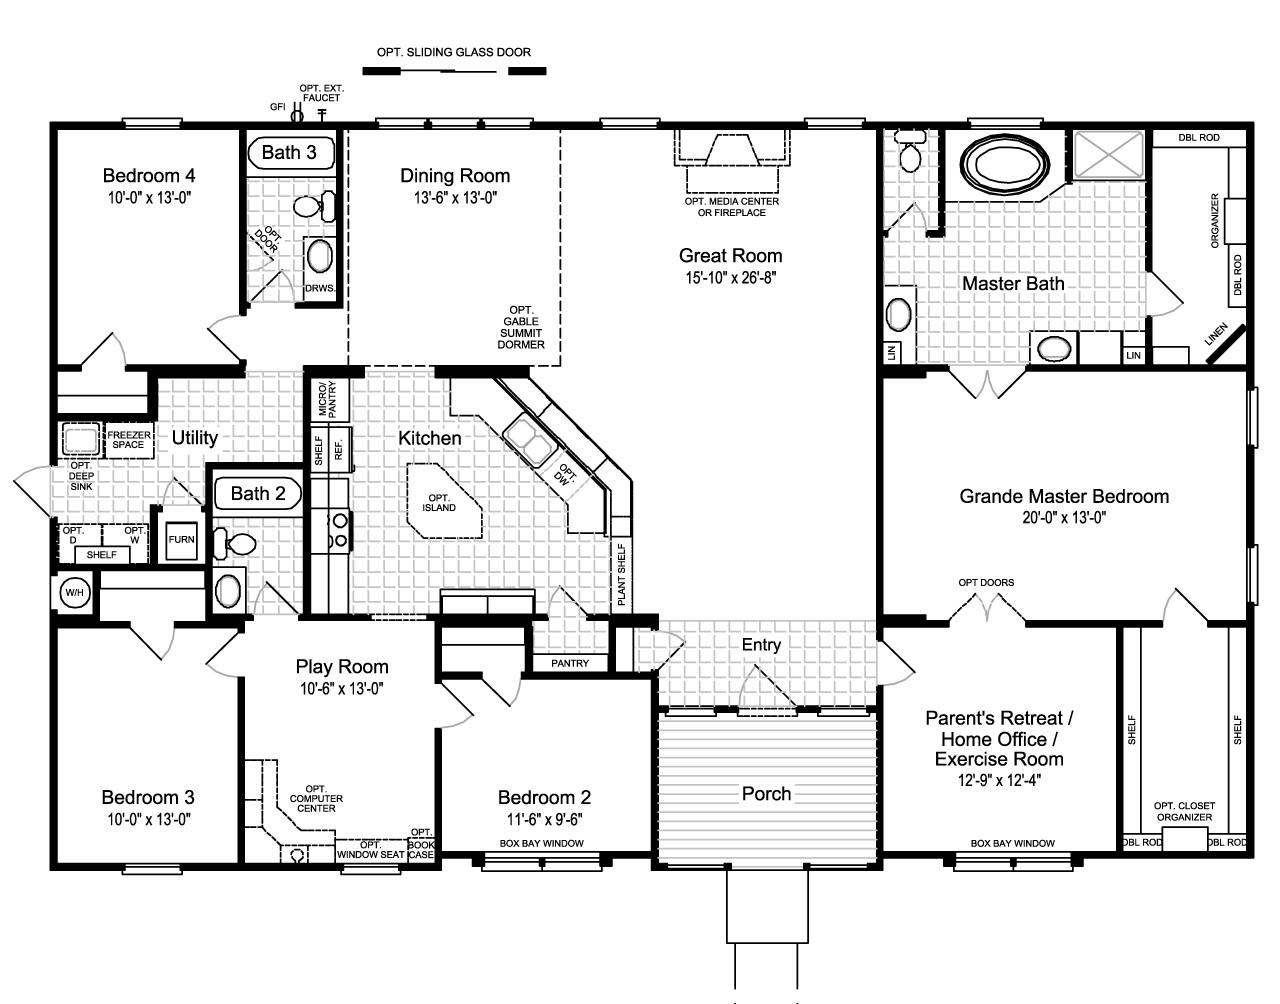 The Hacienda Ii Vr41664a Manufactured Home Floor Plan Or Modular Floor Plans With Images Modular Home Plans Mobile Home Floor Plans Modular Home Floor Plans